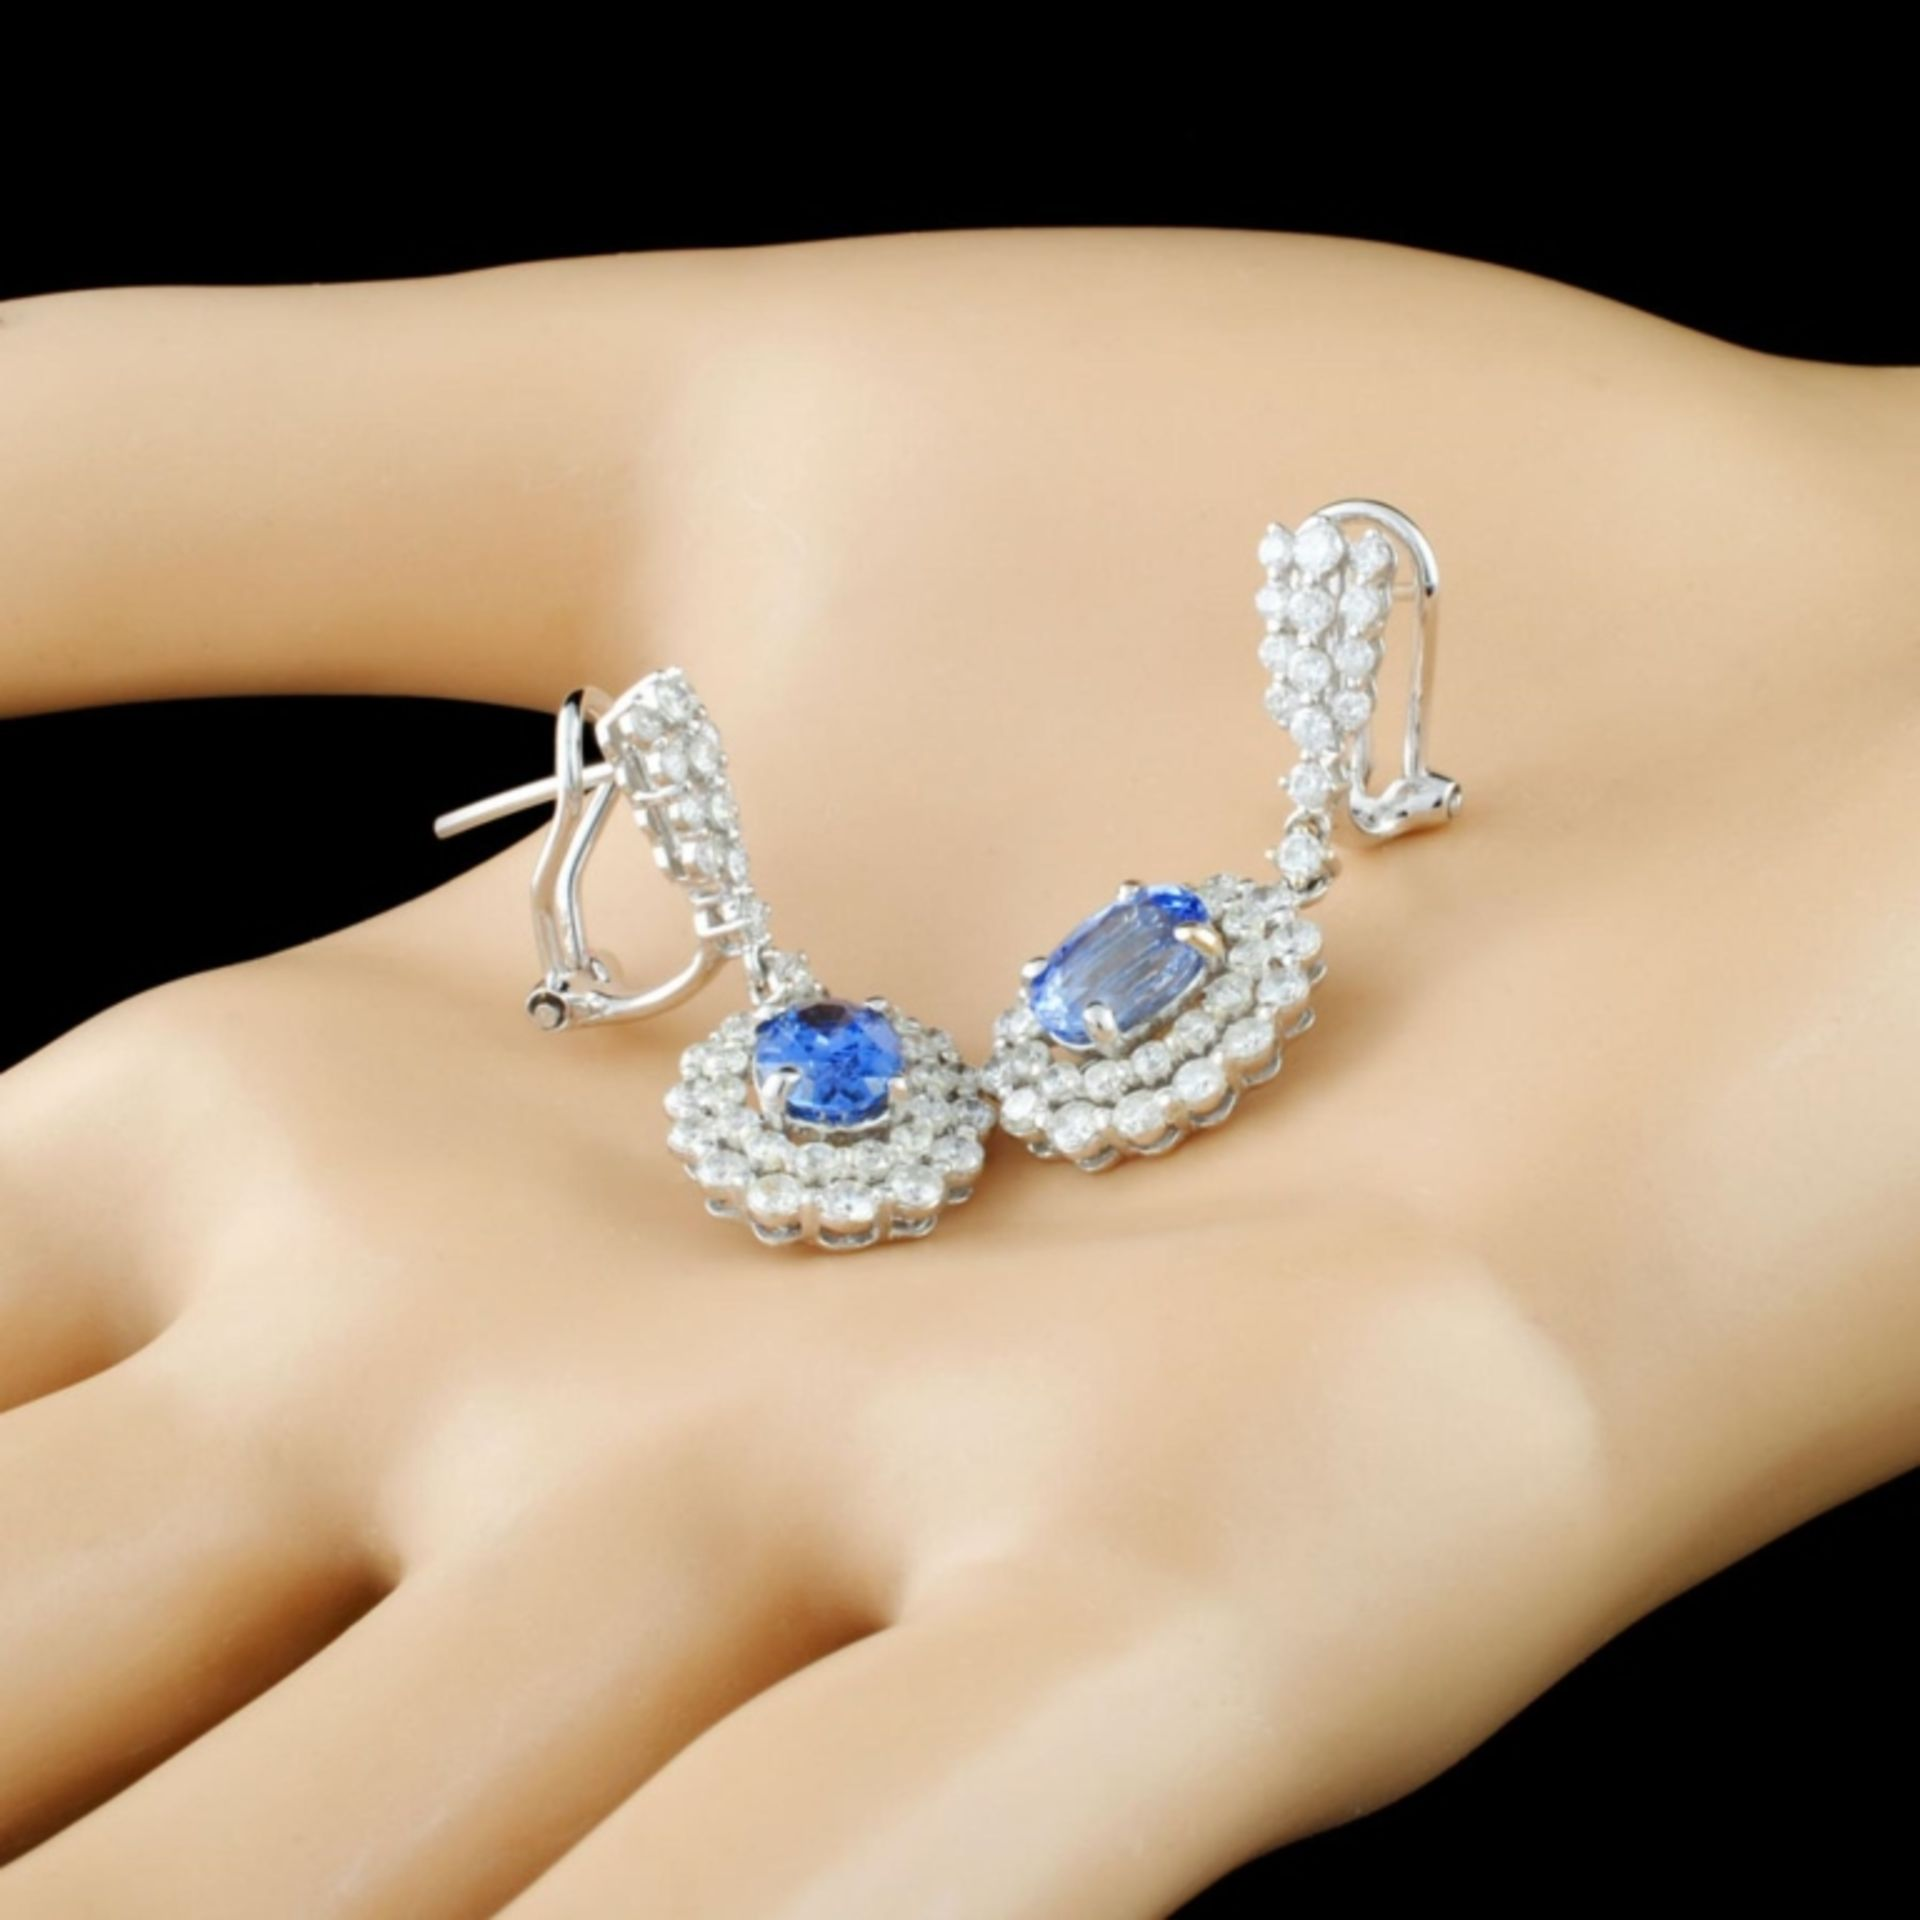 18K Gold 2.56ct Sapphire & 2.36ctw Diamond Earring - Image 2 of 3